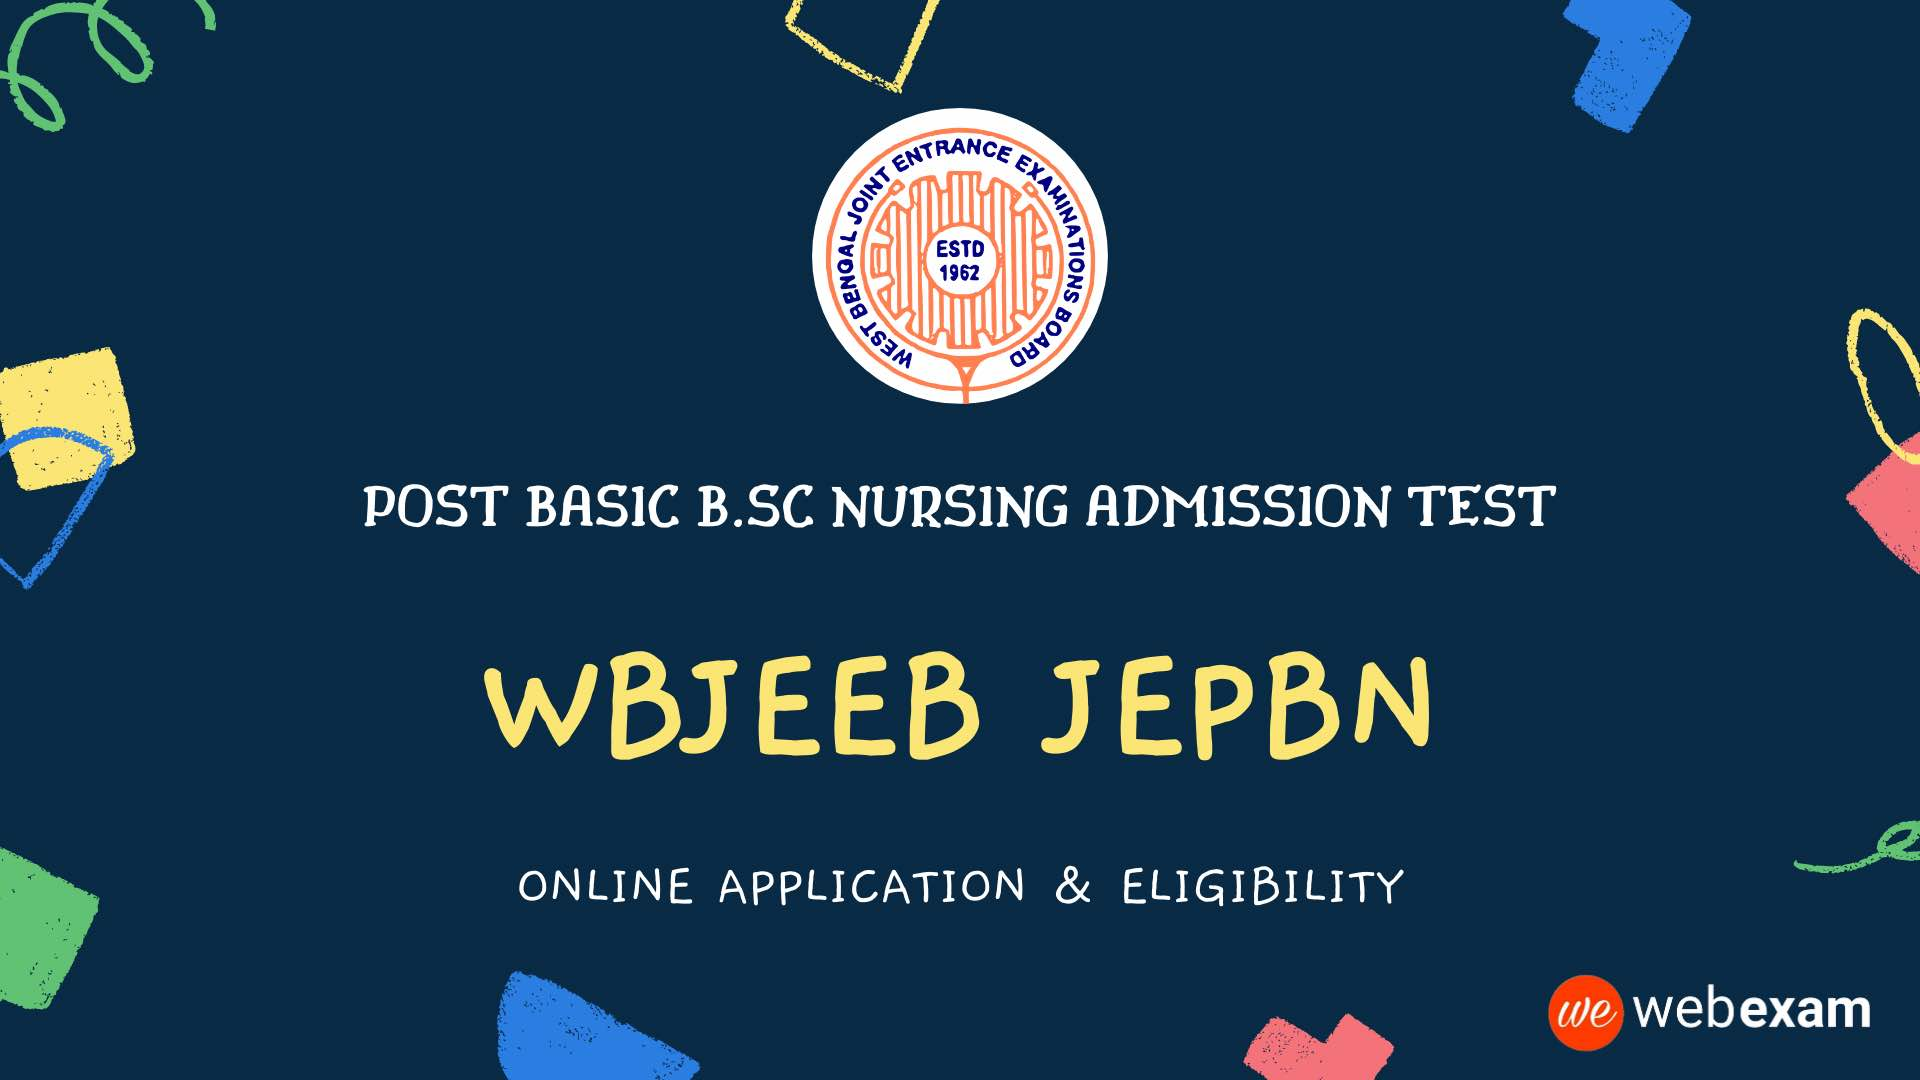 WBJEEB JEPBN 2021 Post Basic Nursing Admission Application